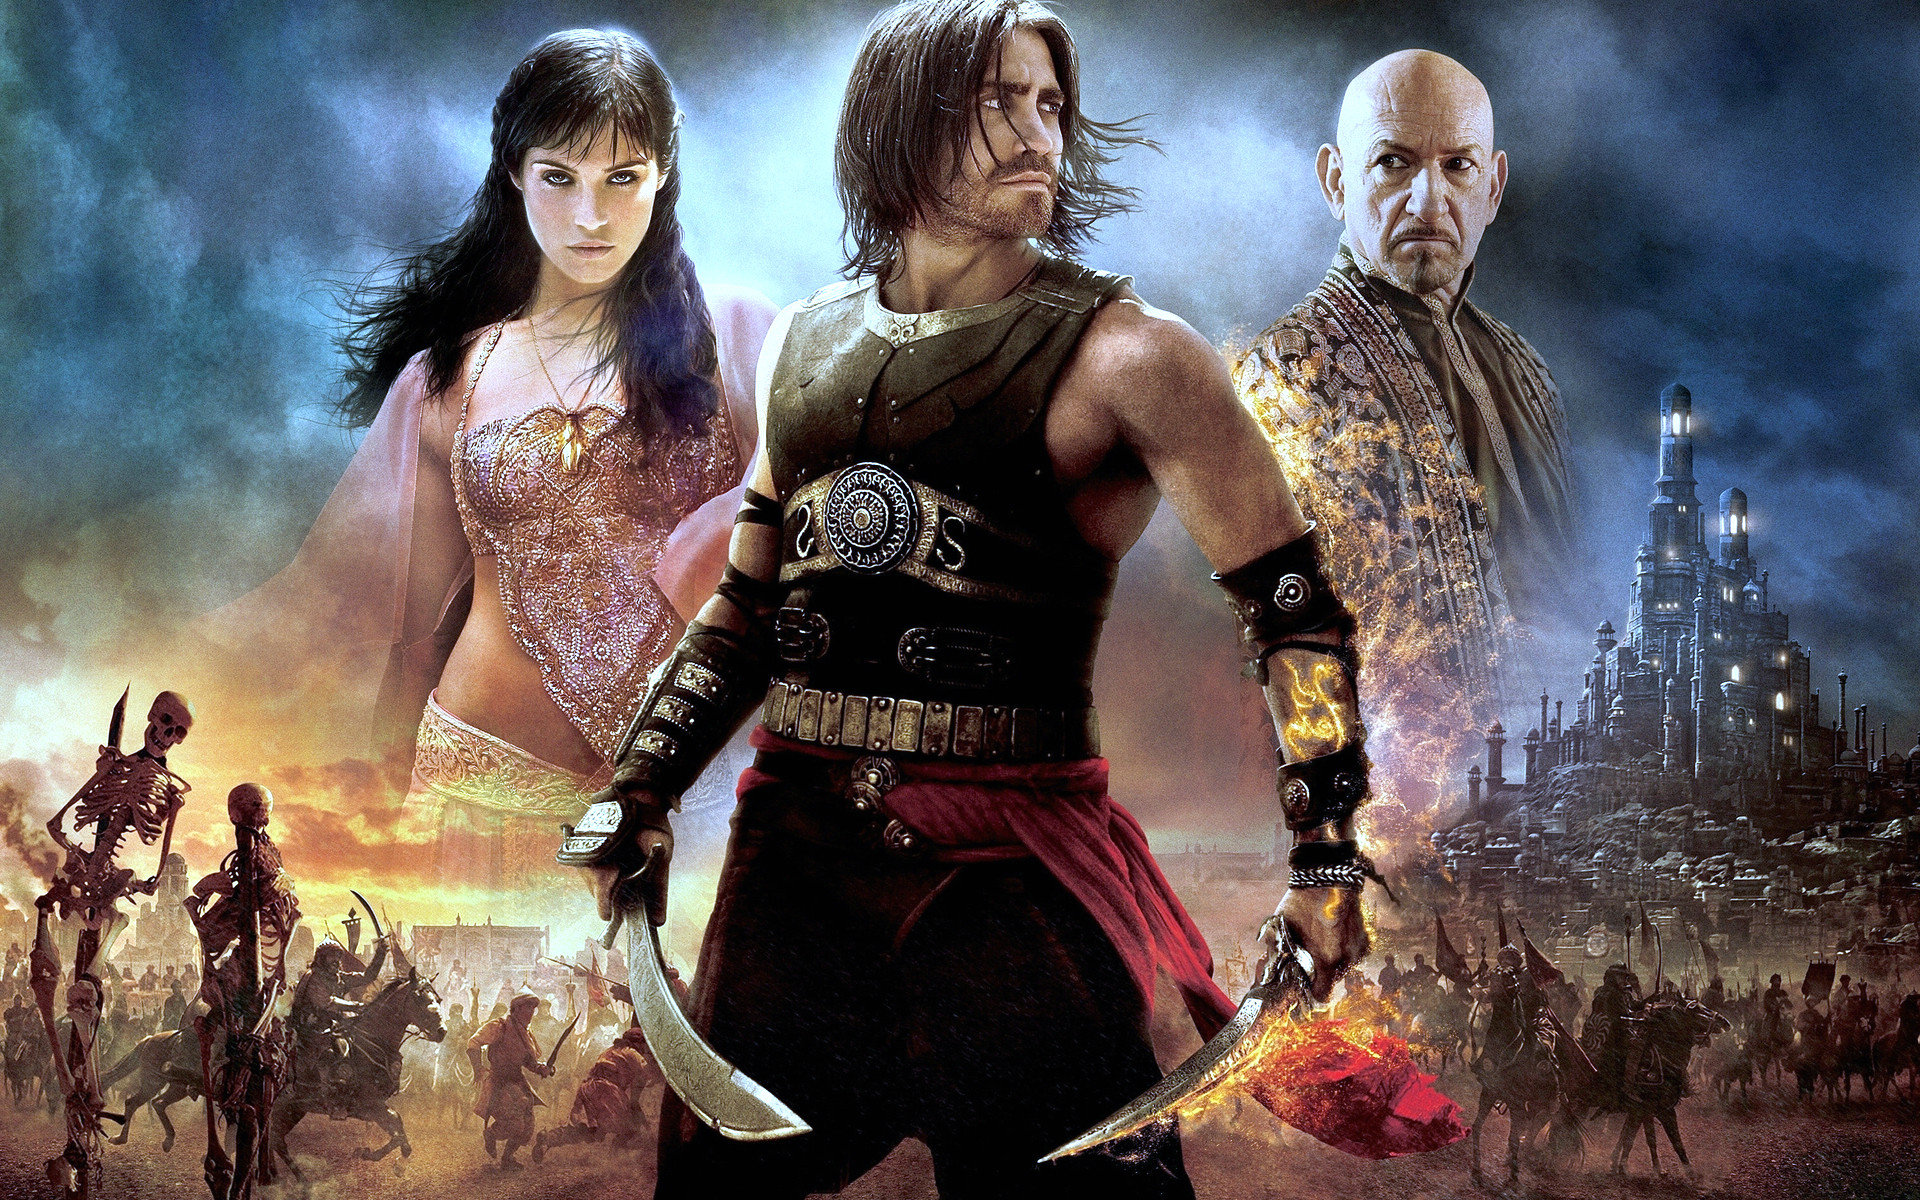 2010 Prince of Persia The Sands of Time Movie wallpapers (62 Wallpapers) –  HD Wallpapers